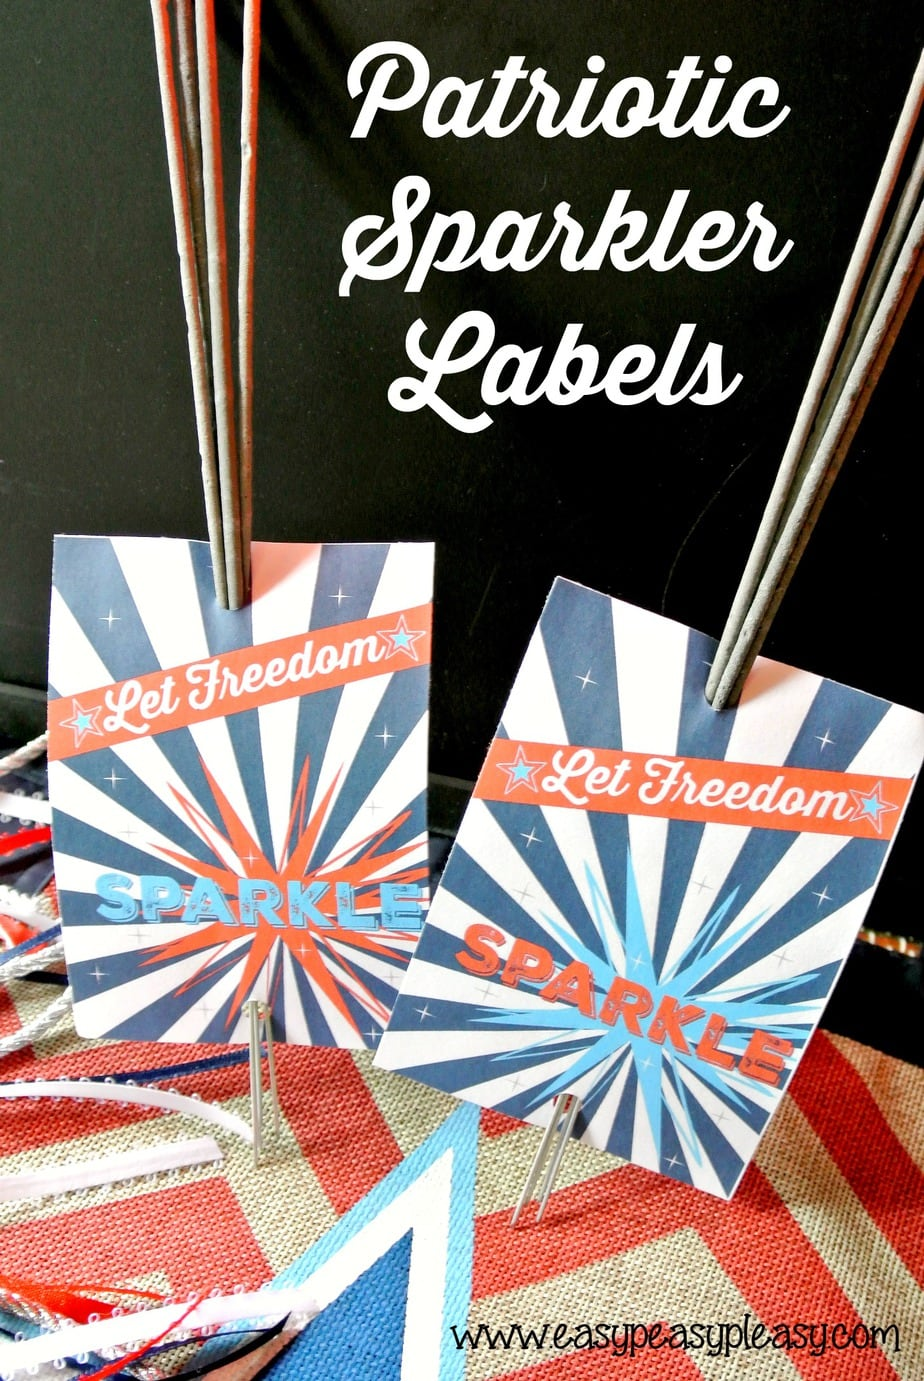 Free Printable Patriotic Sparkler Labels and other party printables.